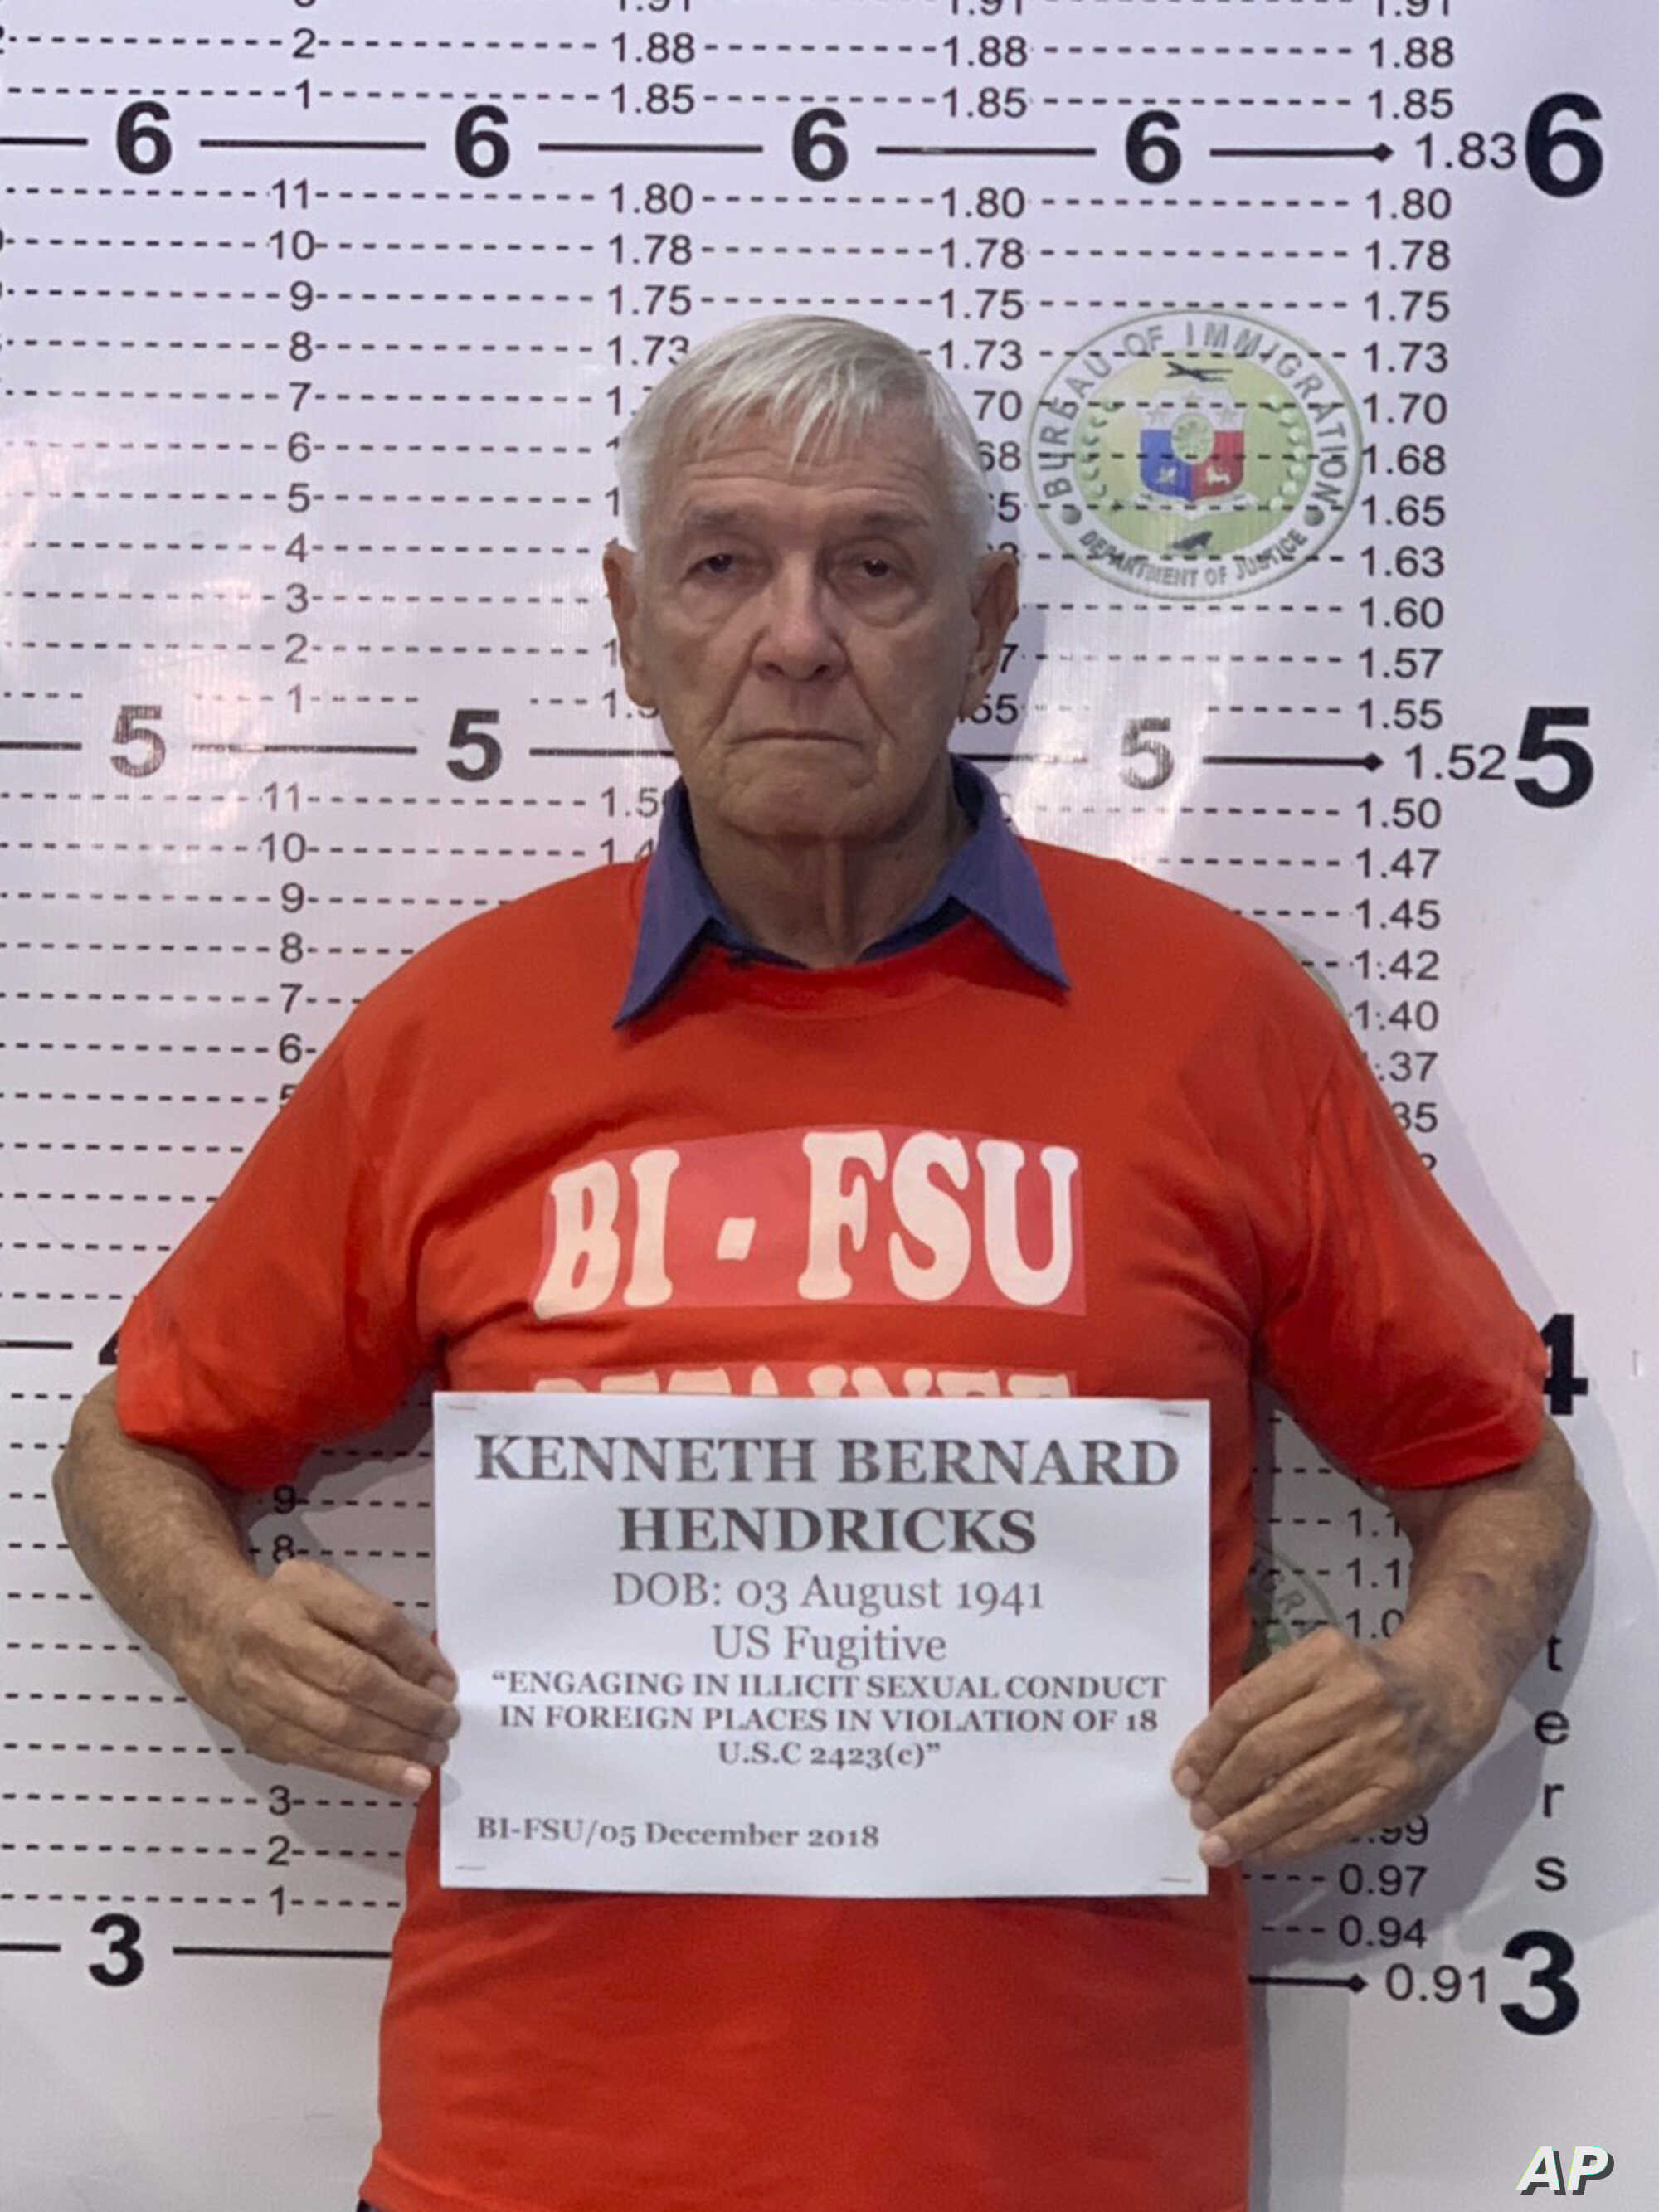 The Rev. Kenneth Bernard Hendricks poses for a mugshot at the Bureau of Immigration in Manila, Dec. 5, 2018. Hendricks, an American, has been accused of multiple counts of sexual abuse.